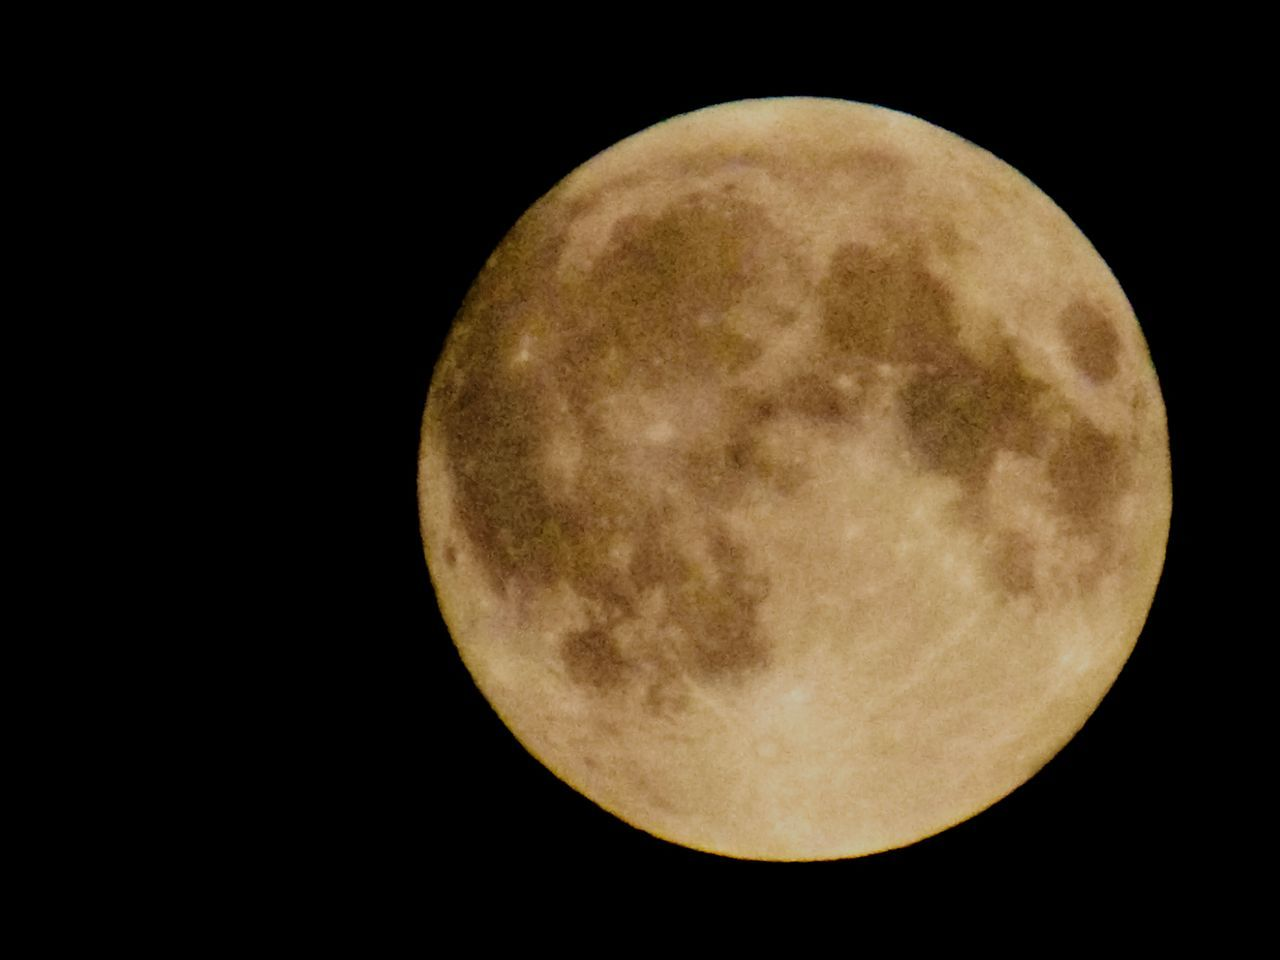 moon, night, astronomy, moon surface, full moon, beauty in nature, planetary moon, circle, nature, scenics, space exploration, tranquility, space, no people, half moon, tranquil scene, discovery, outdoors, clear sky, close-up, sky